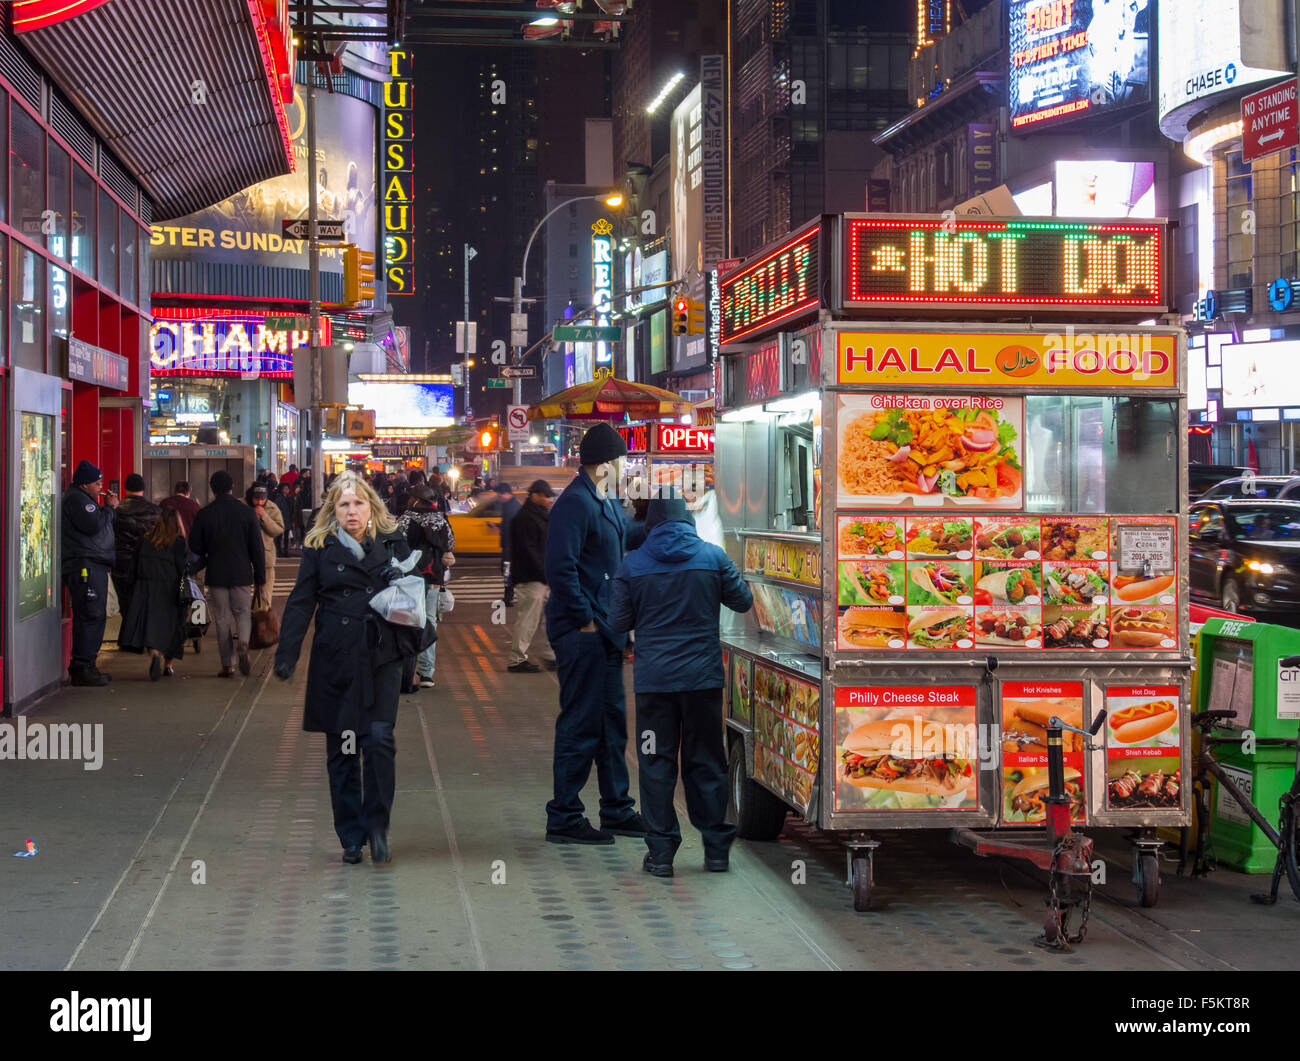 West 42nd Street - Stock Image